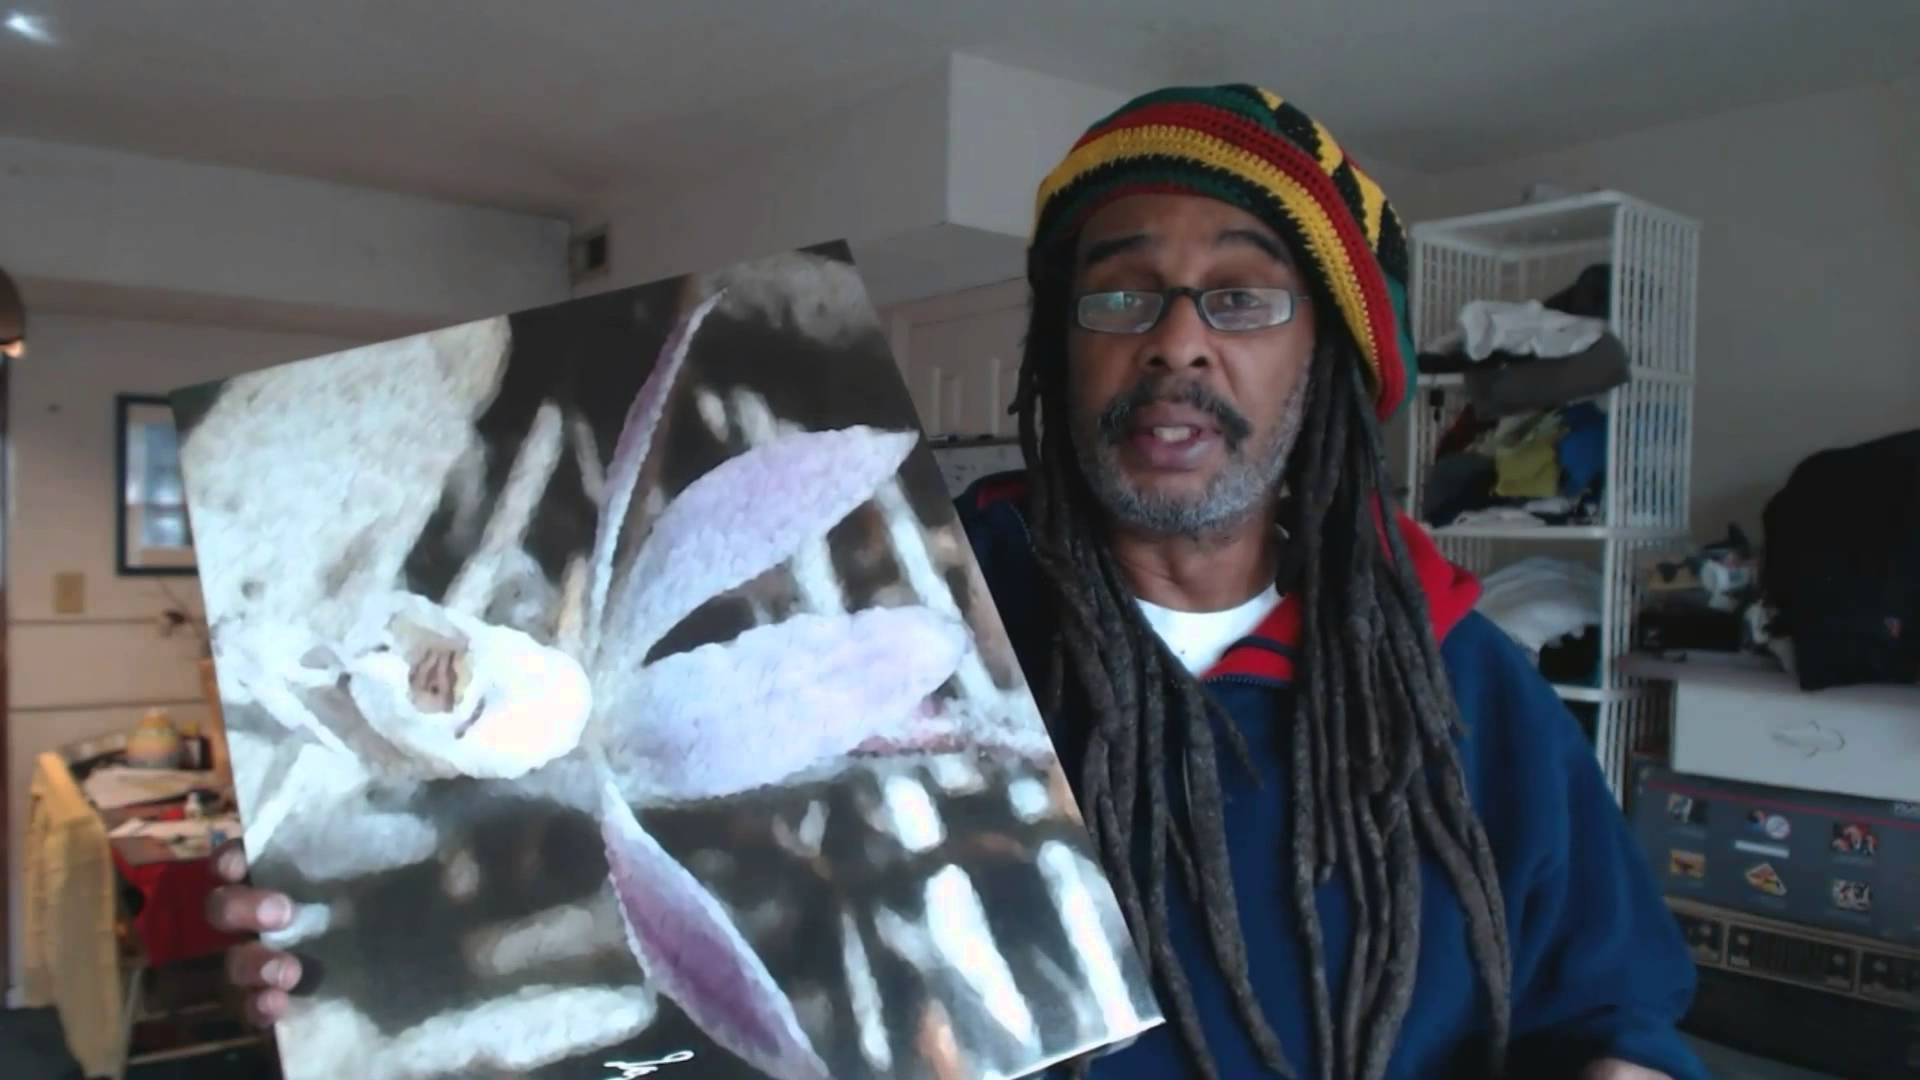 Latest Picasso Goes To Walmart Unboxing Canvas And Wall Art – Youtube Intended For Wall Art At Walmart (View 9 of 15)